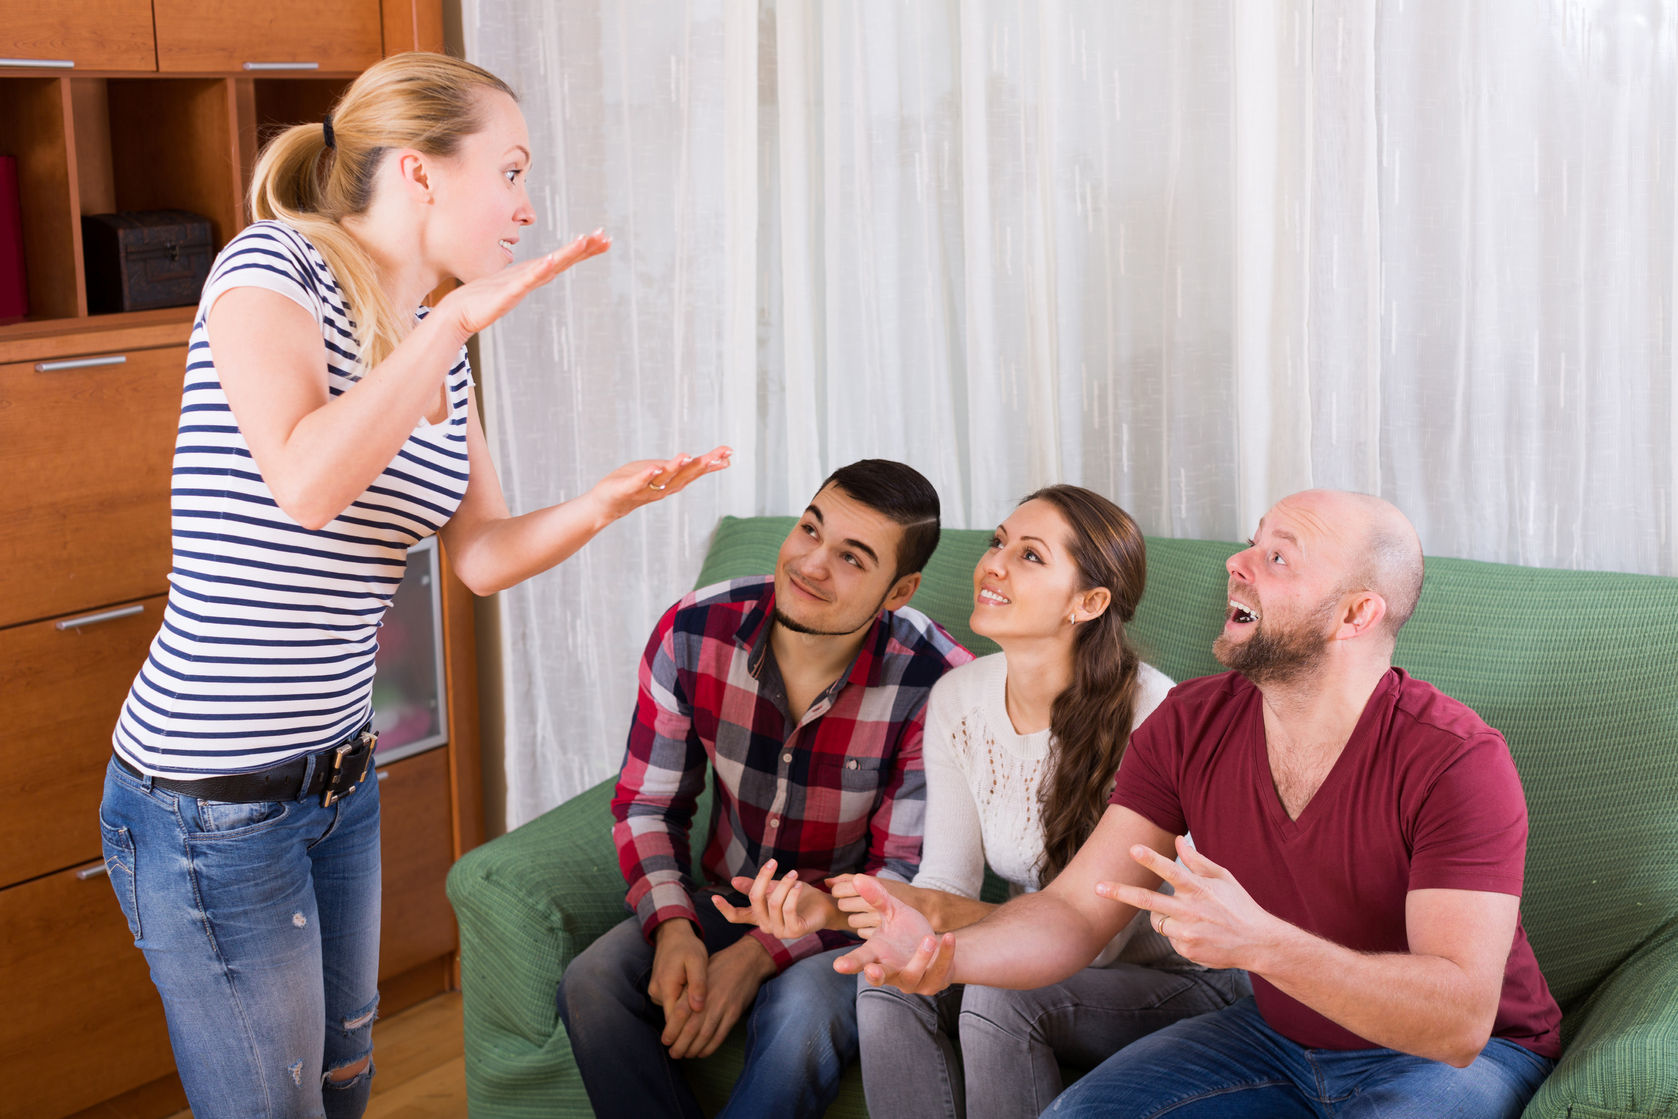 How to Play Charades - FamilyEducation